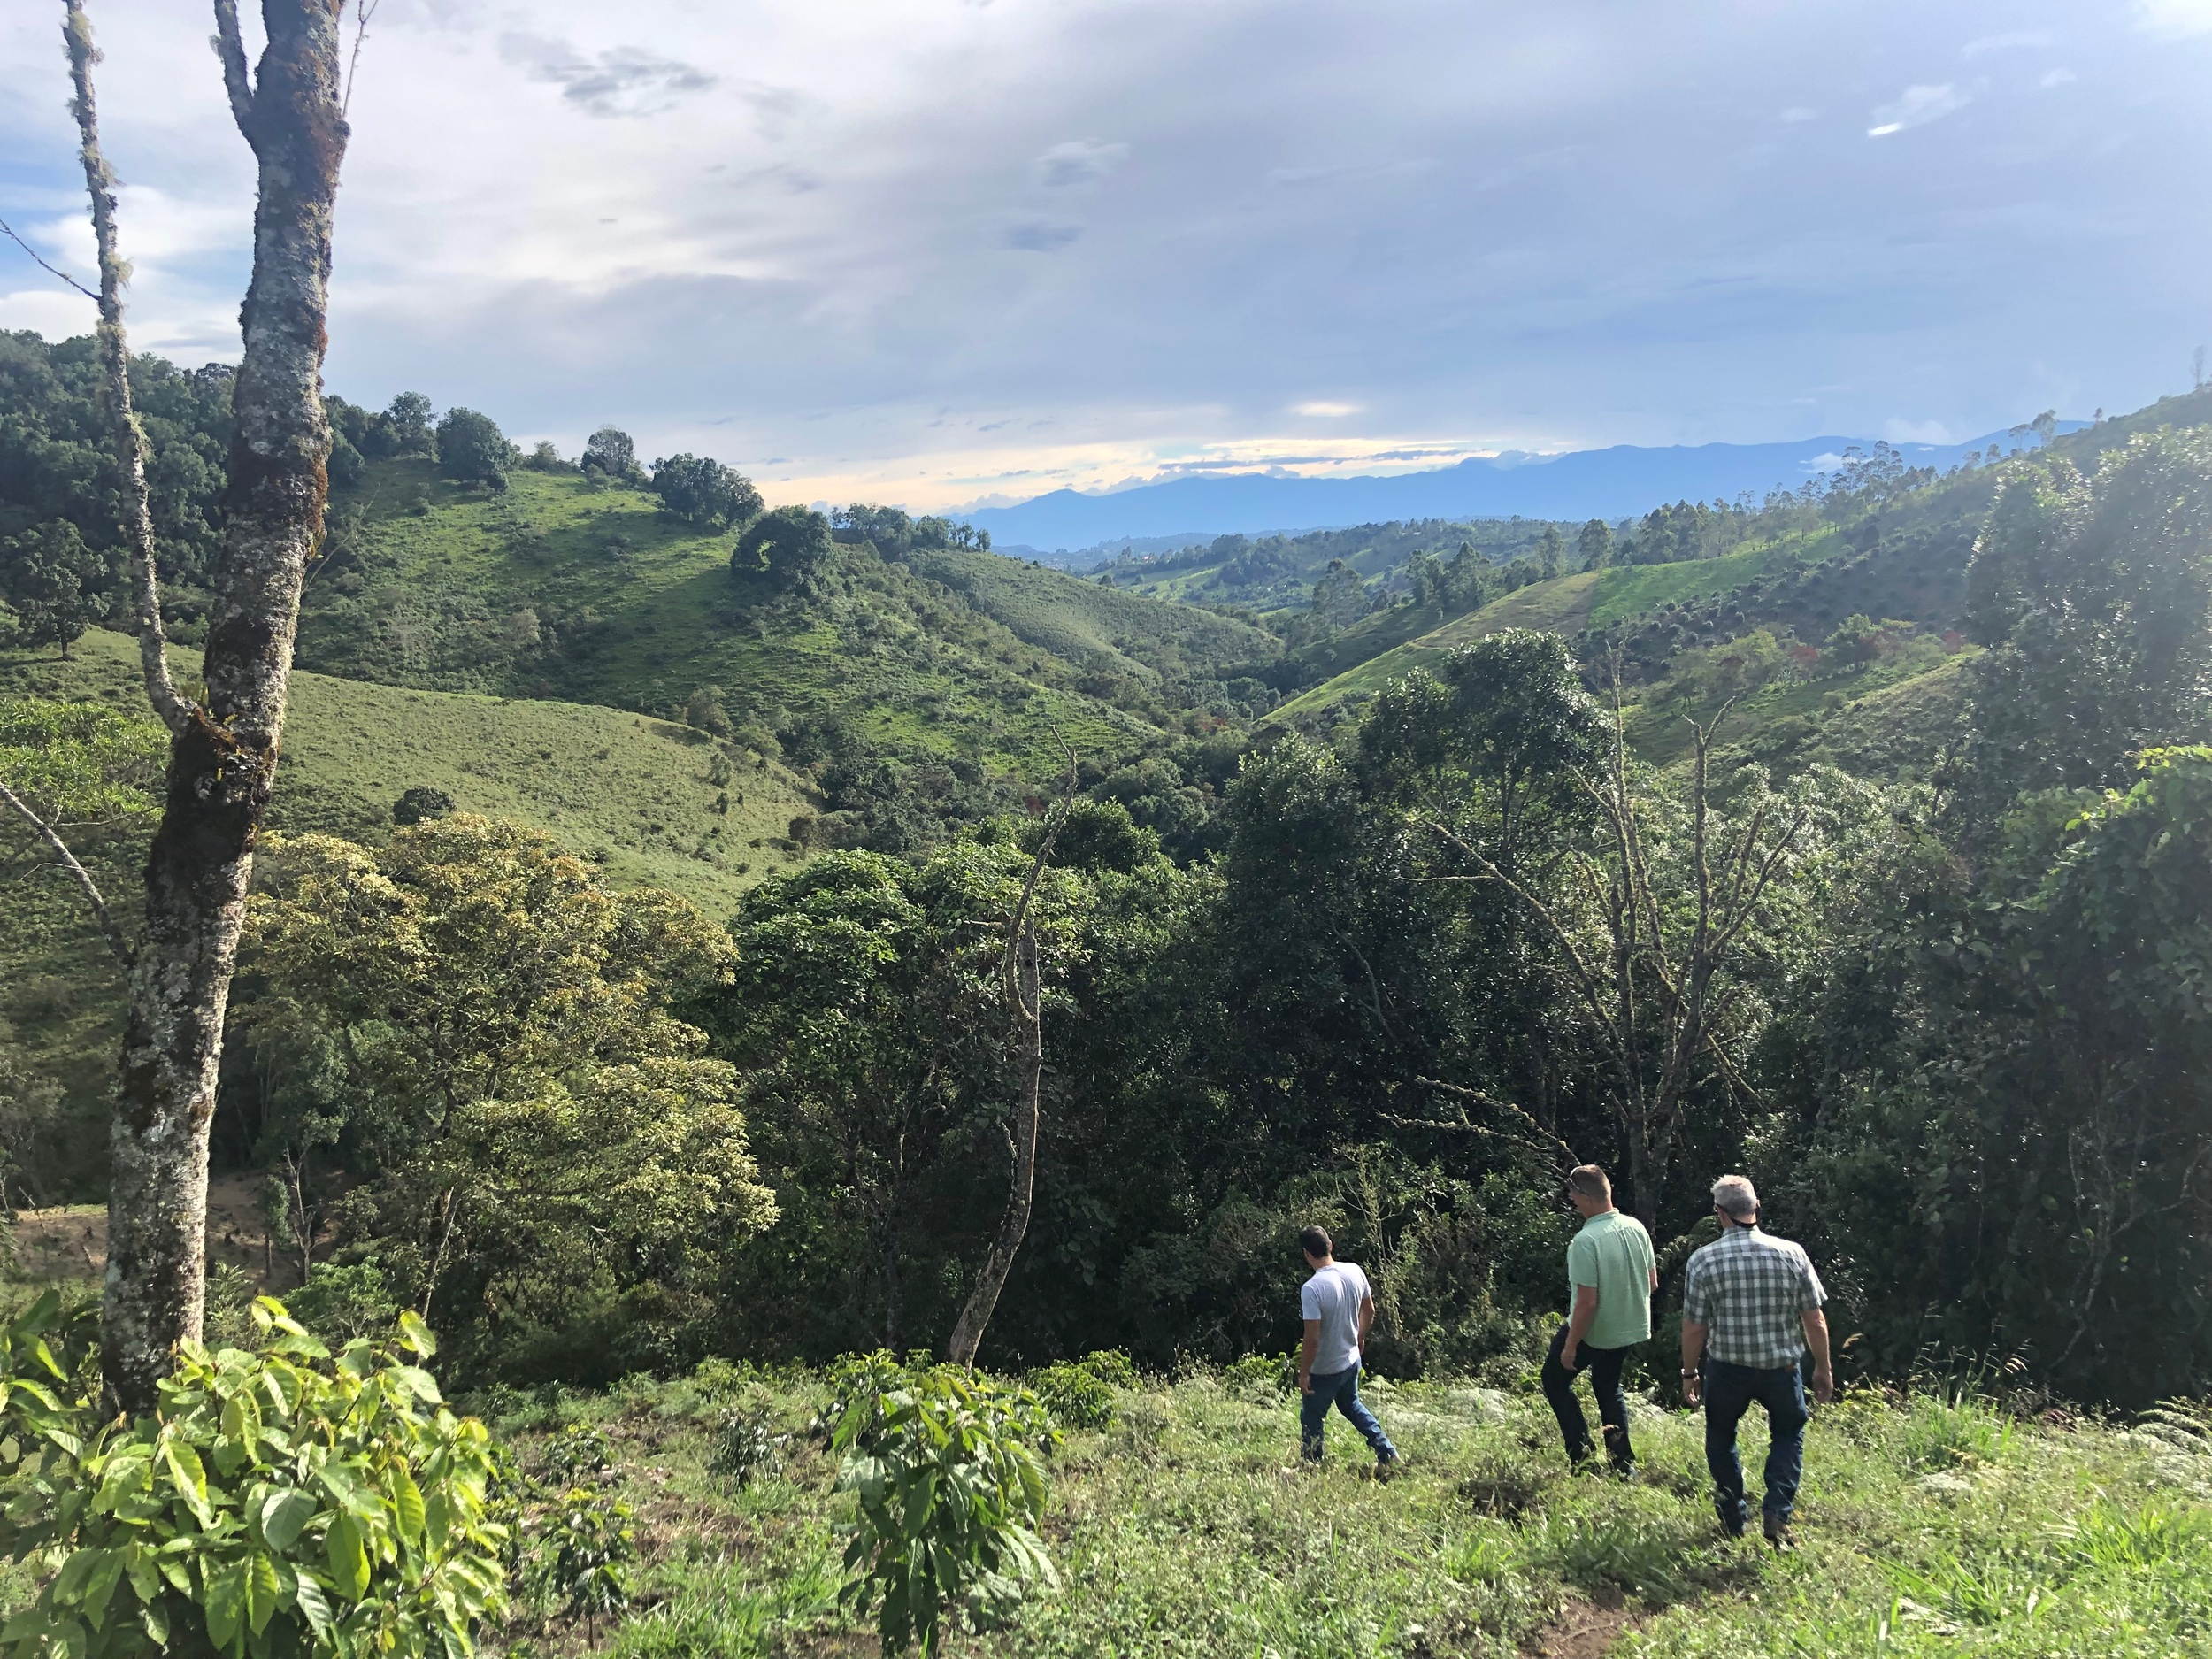 We visited a coffee farm in Popayán (Southwest of Bogotá) & were greeted by one of our gracious host, Andreas. We checked out the current berries that were being prepared for processing plus more.